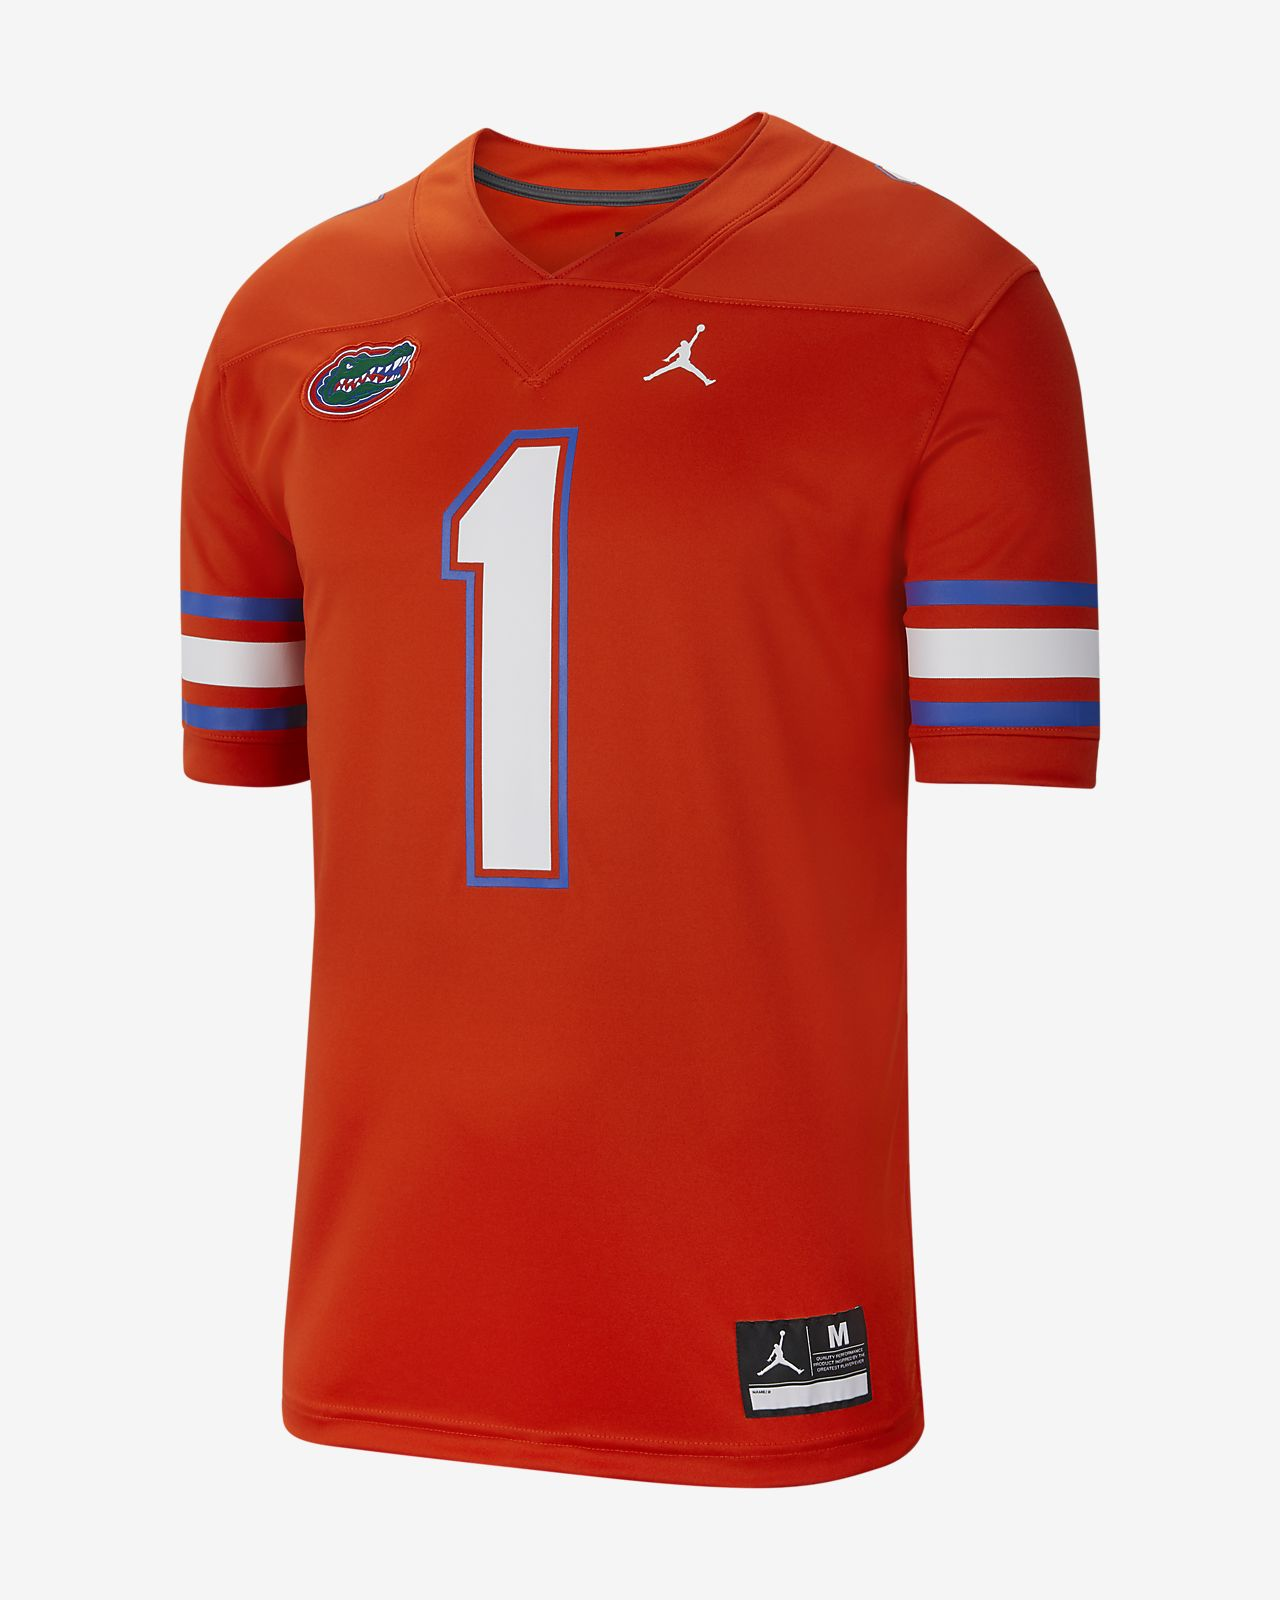 Nike College Dri-FIT Game (Florida) Men's Football Jersey